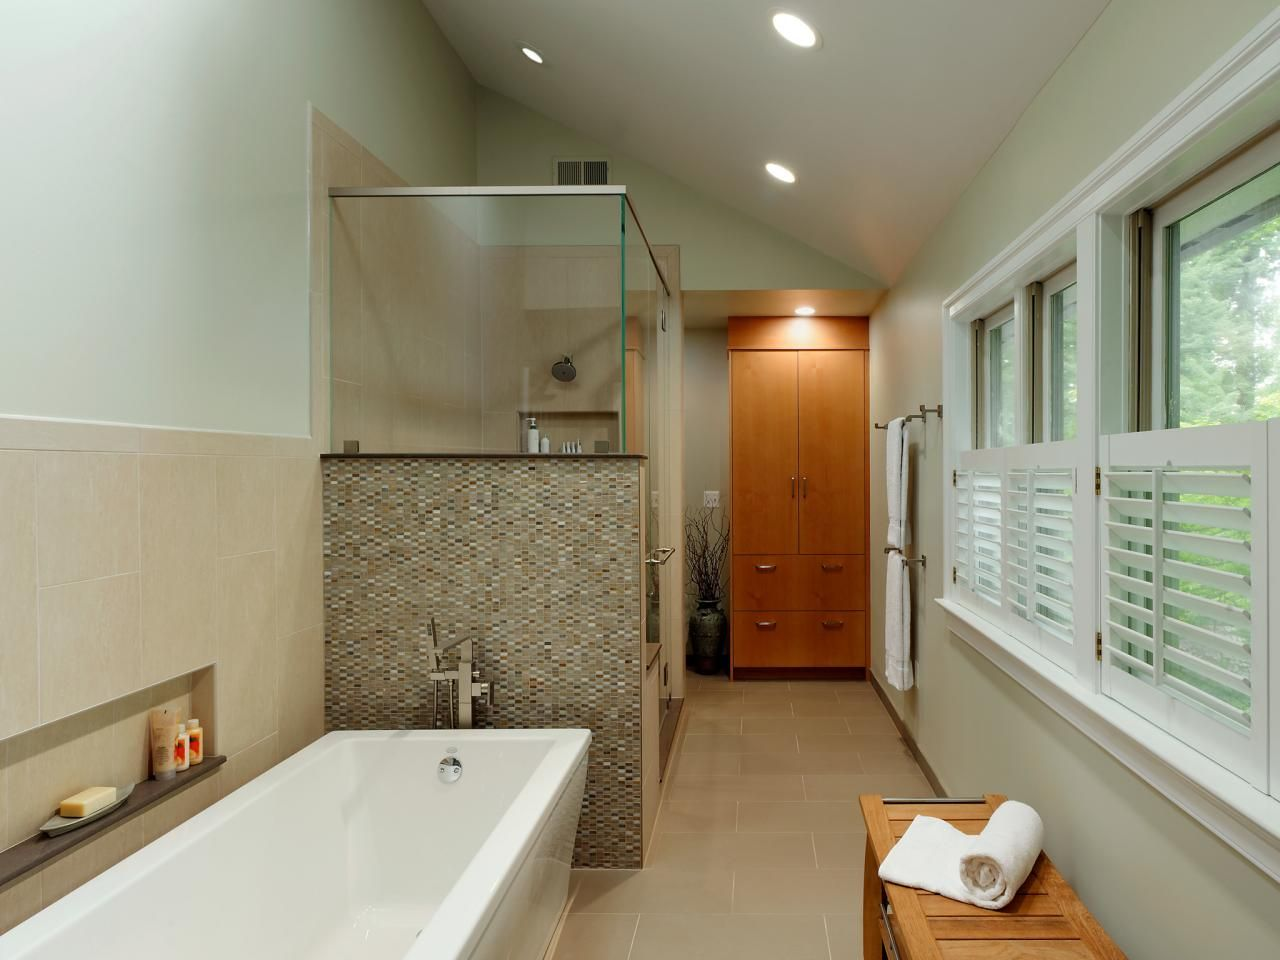 Large Bathroom Design This Master Bath's Existing Raisedpanel Cabinets Were Replaced